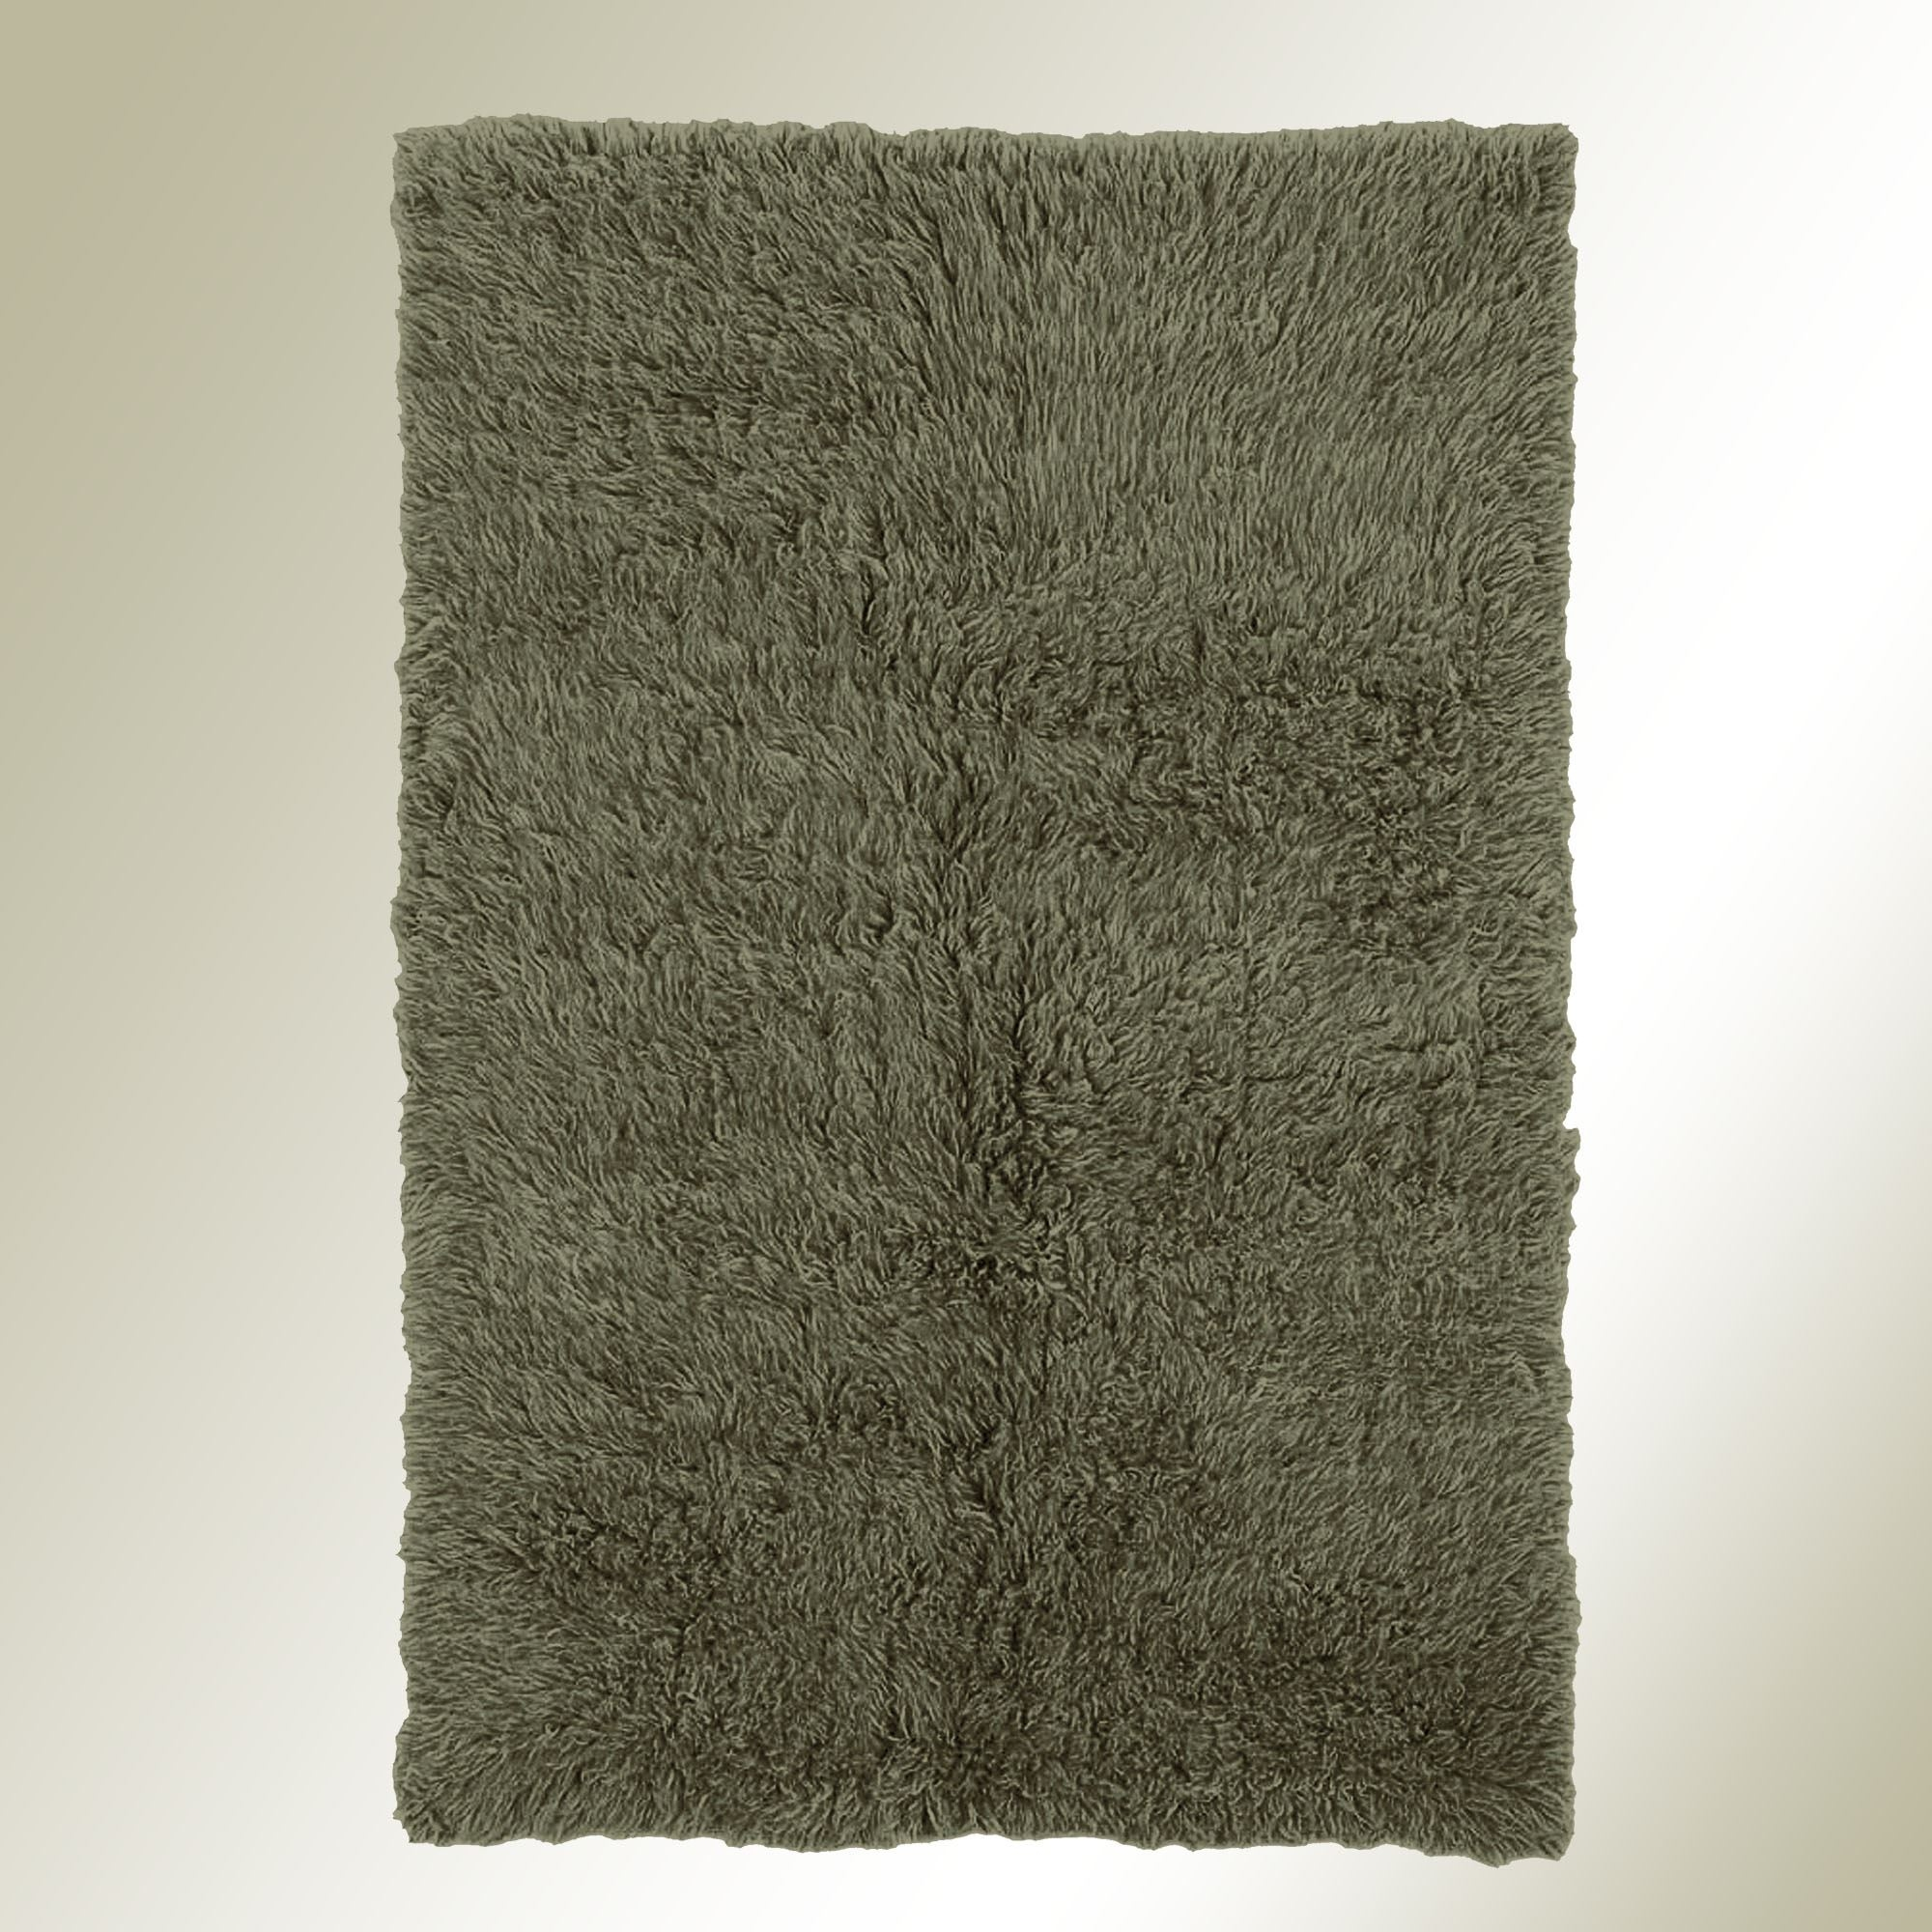 Olive Green Flokati Wool Shag Area Rugs For Olive Green Rugs (Image 10 of 15)